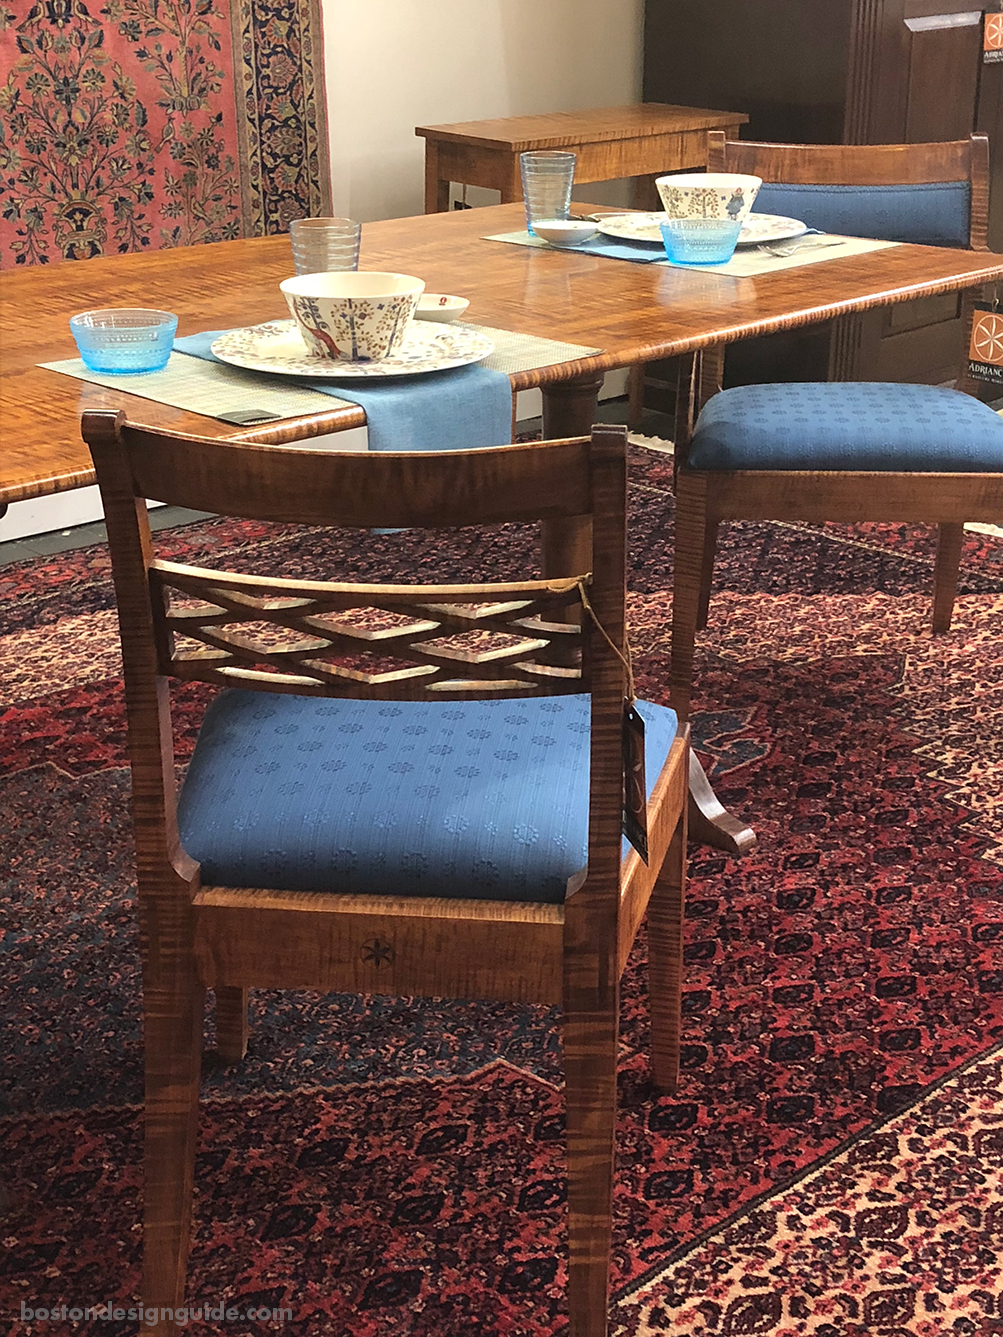 Oriental rug with wood furniture